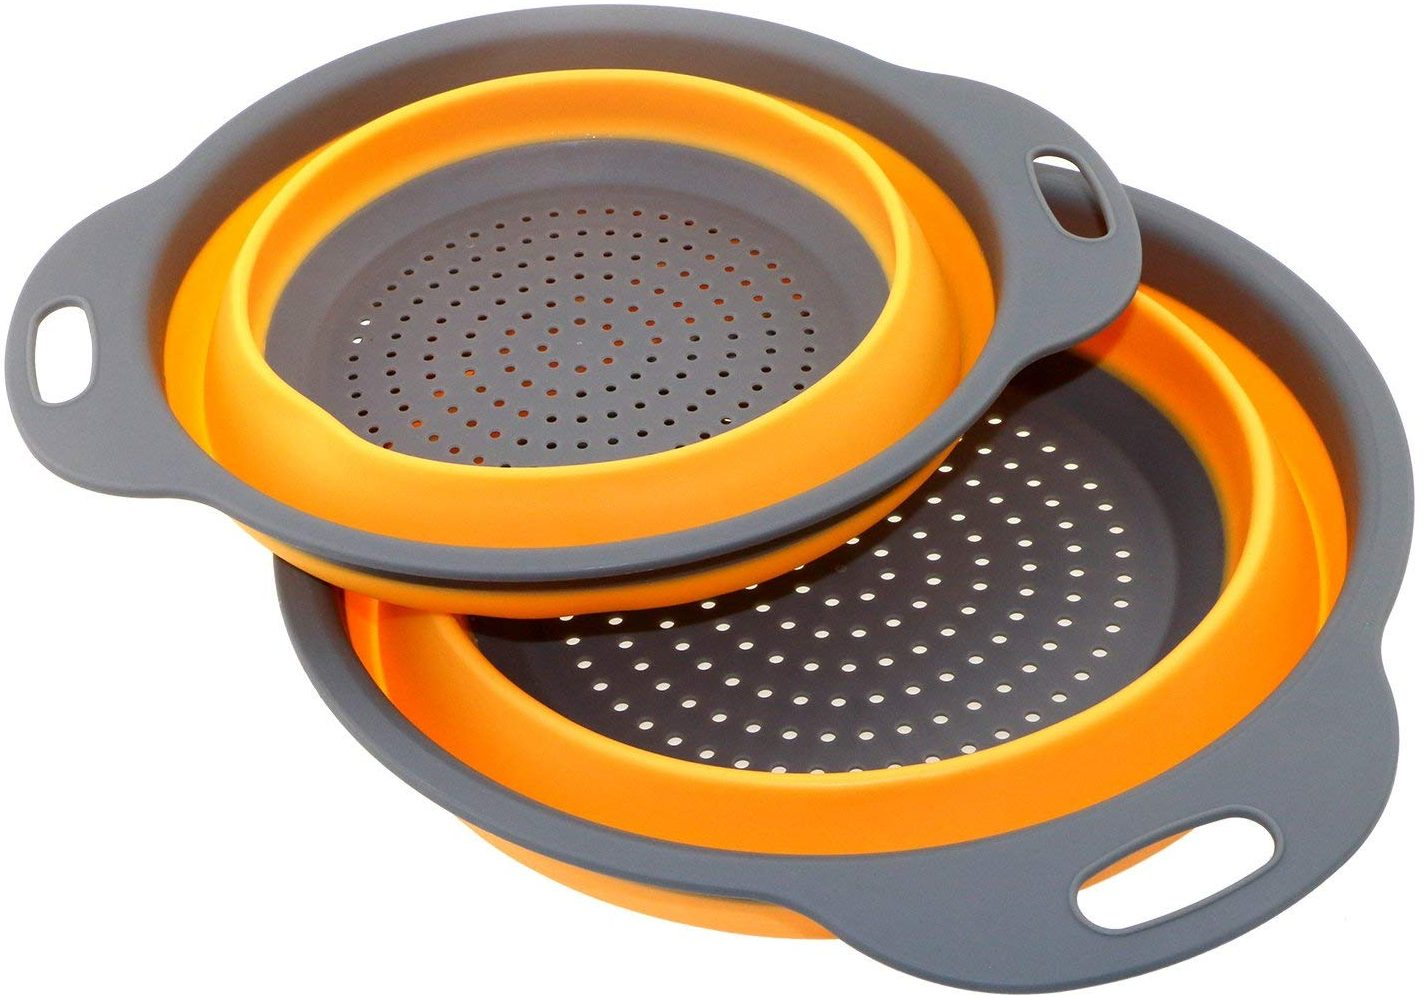 TedGem Collapsible Colander Set